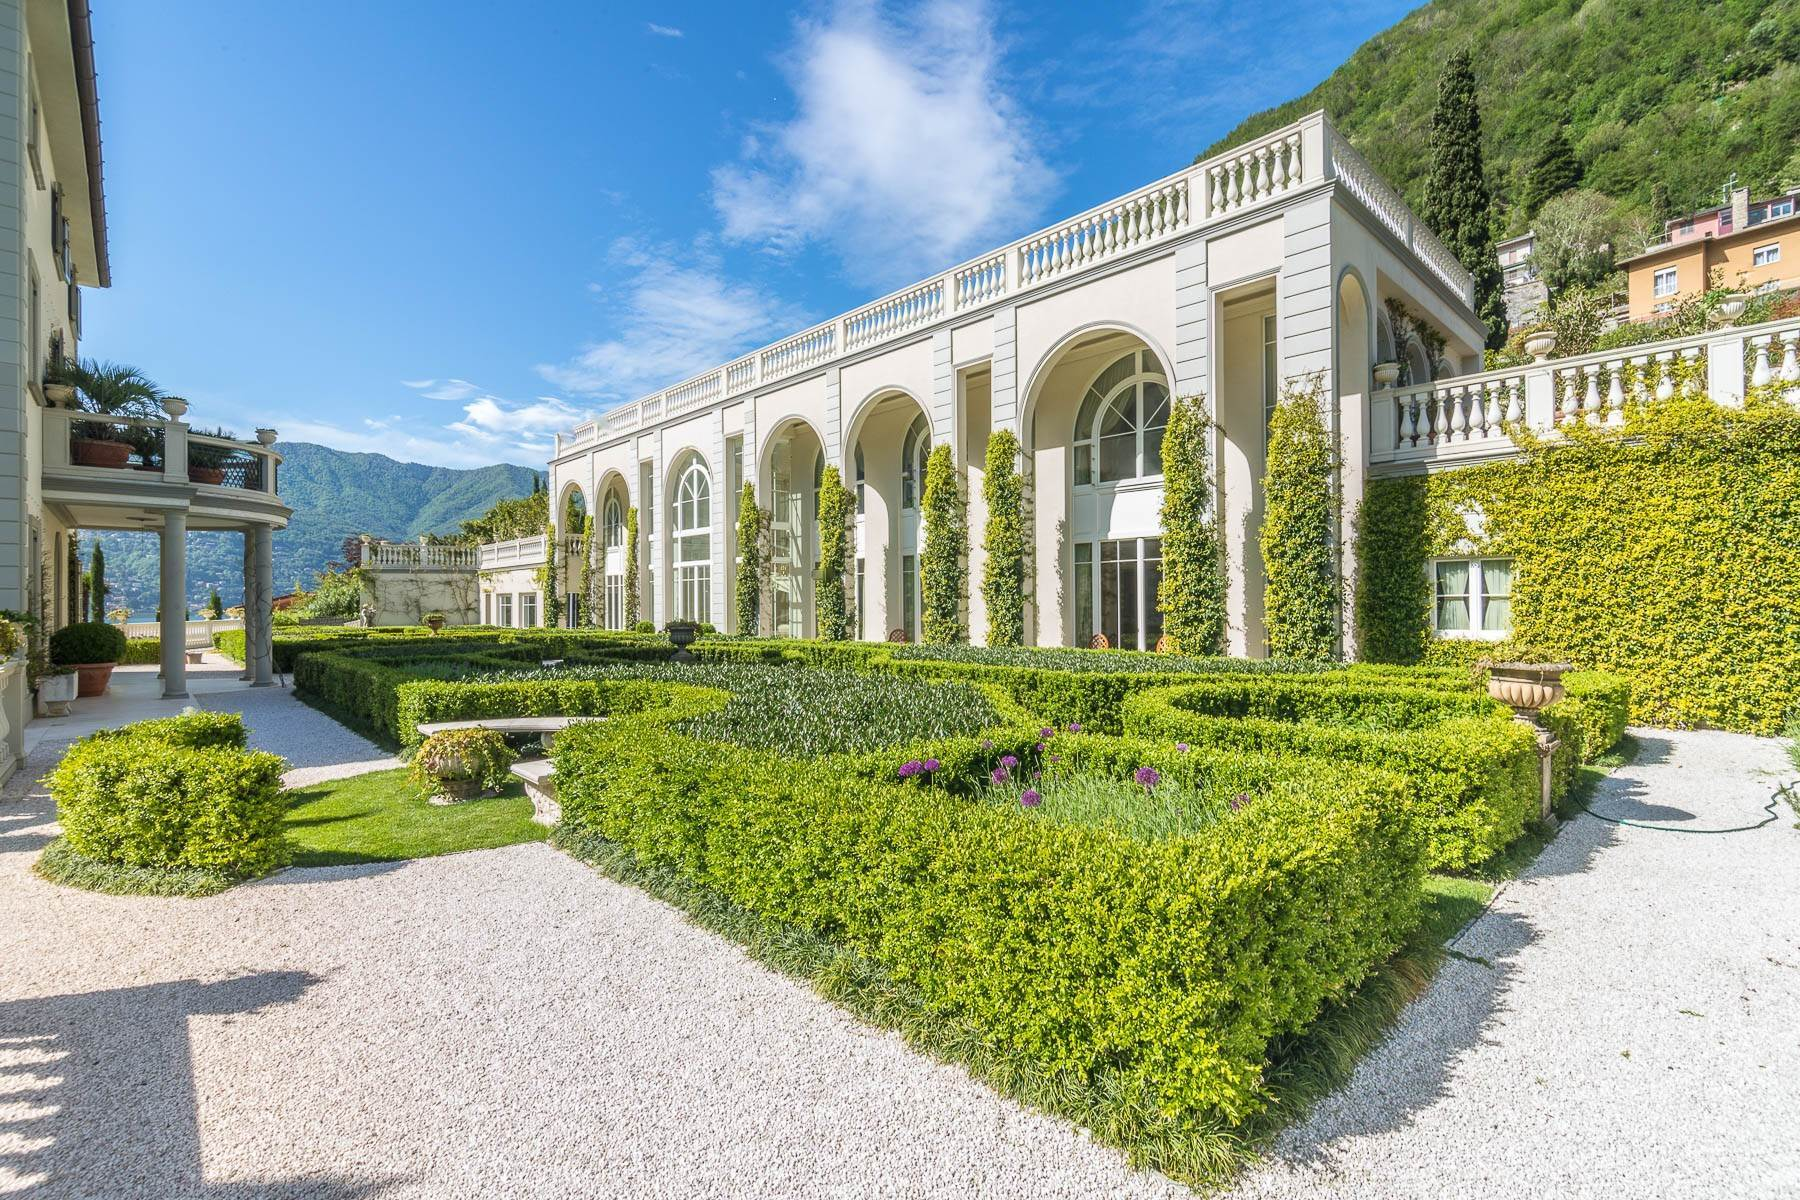 3. Other Residential Homes at Laglio, Como, Italy